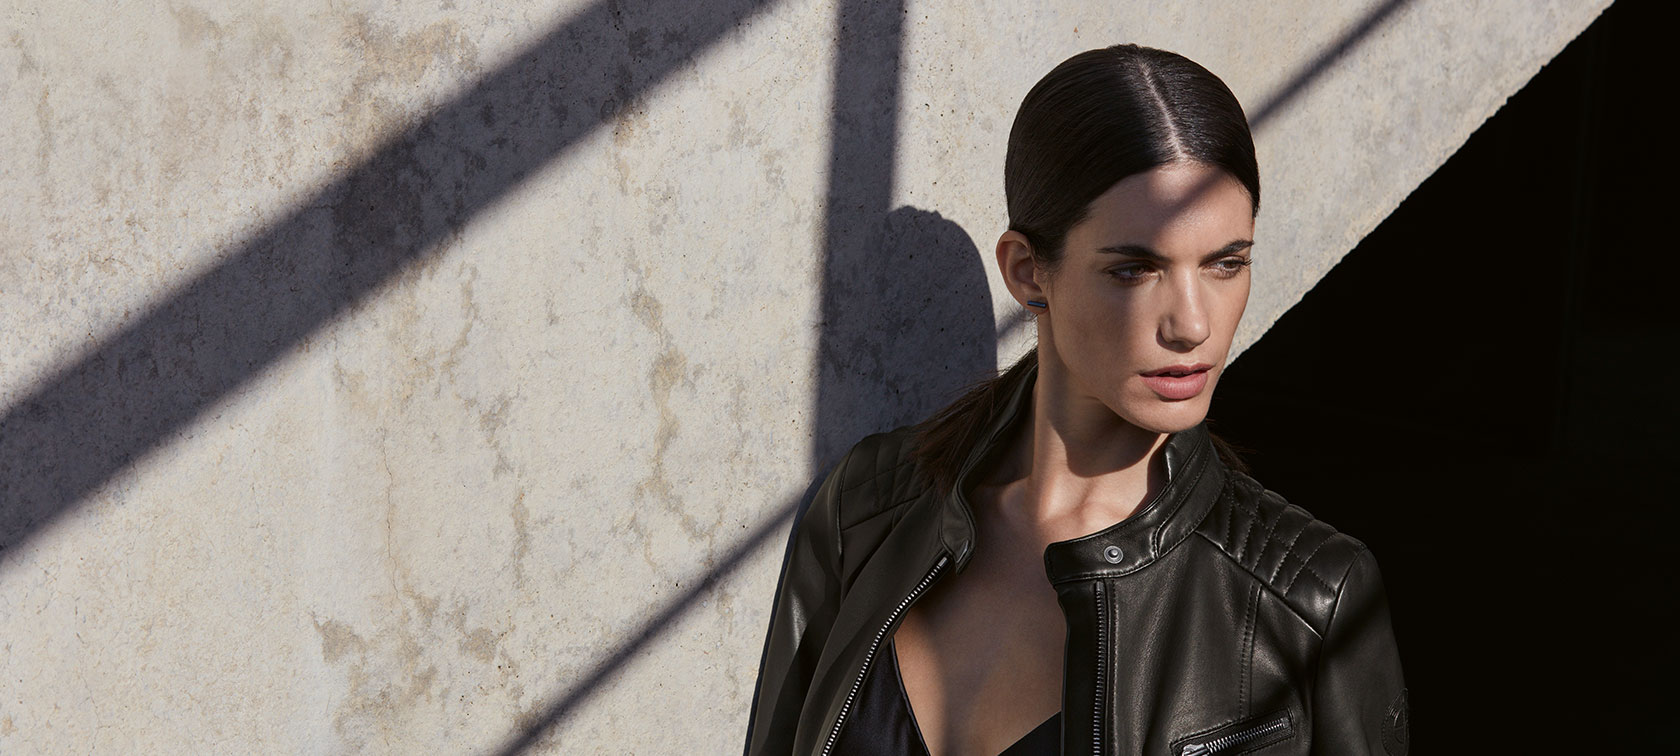 In the picture, a young woman is wearing the BMW Ladies Leather Jacket in front of an urban backdrop.